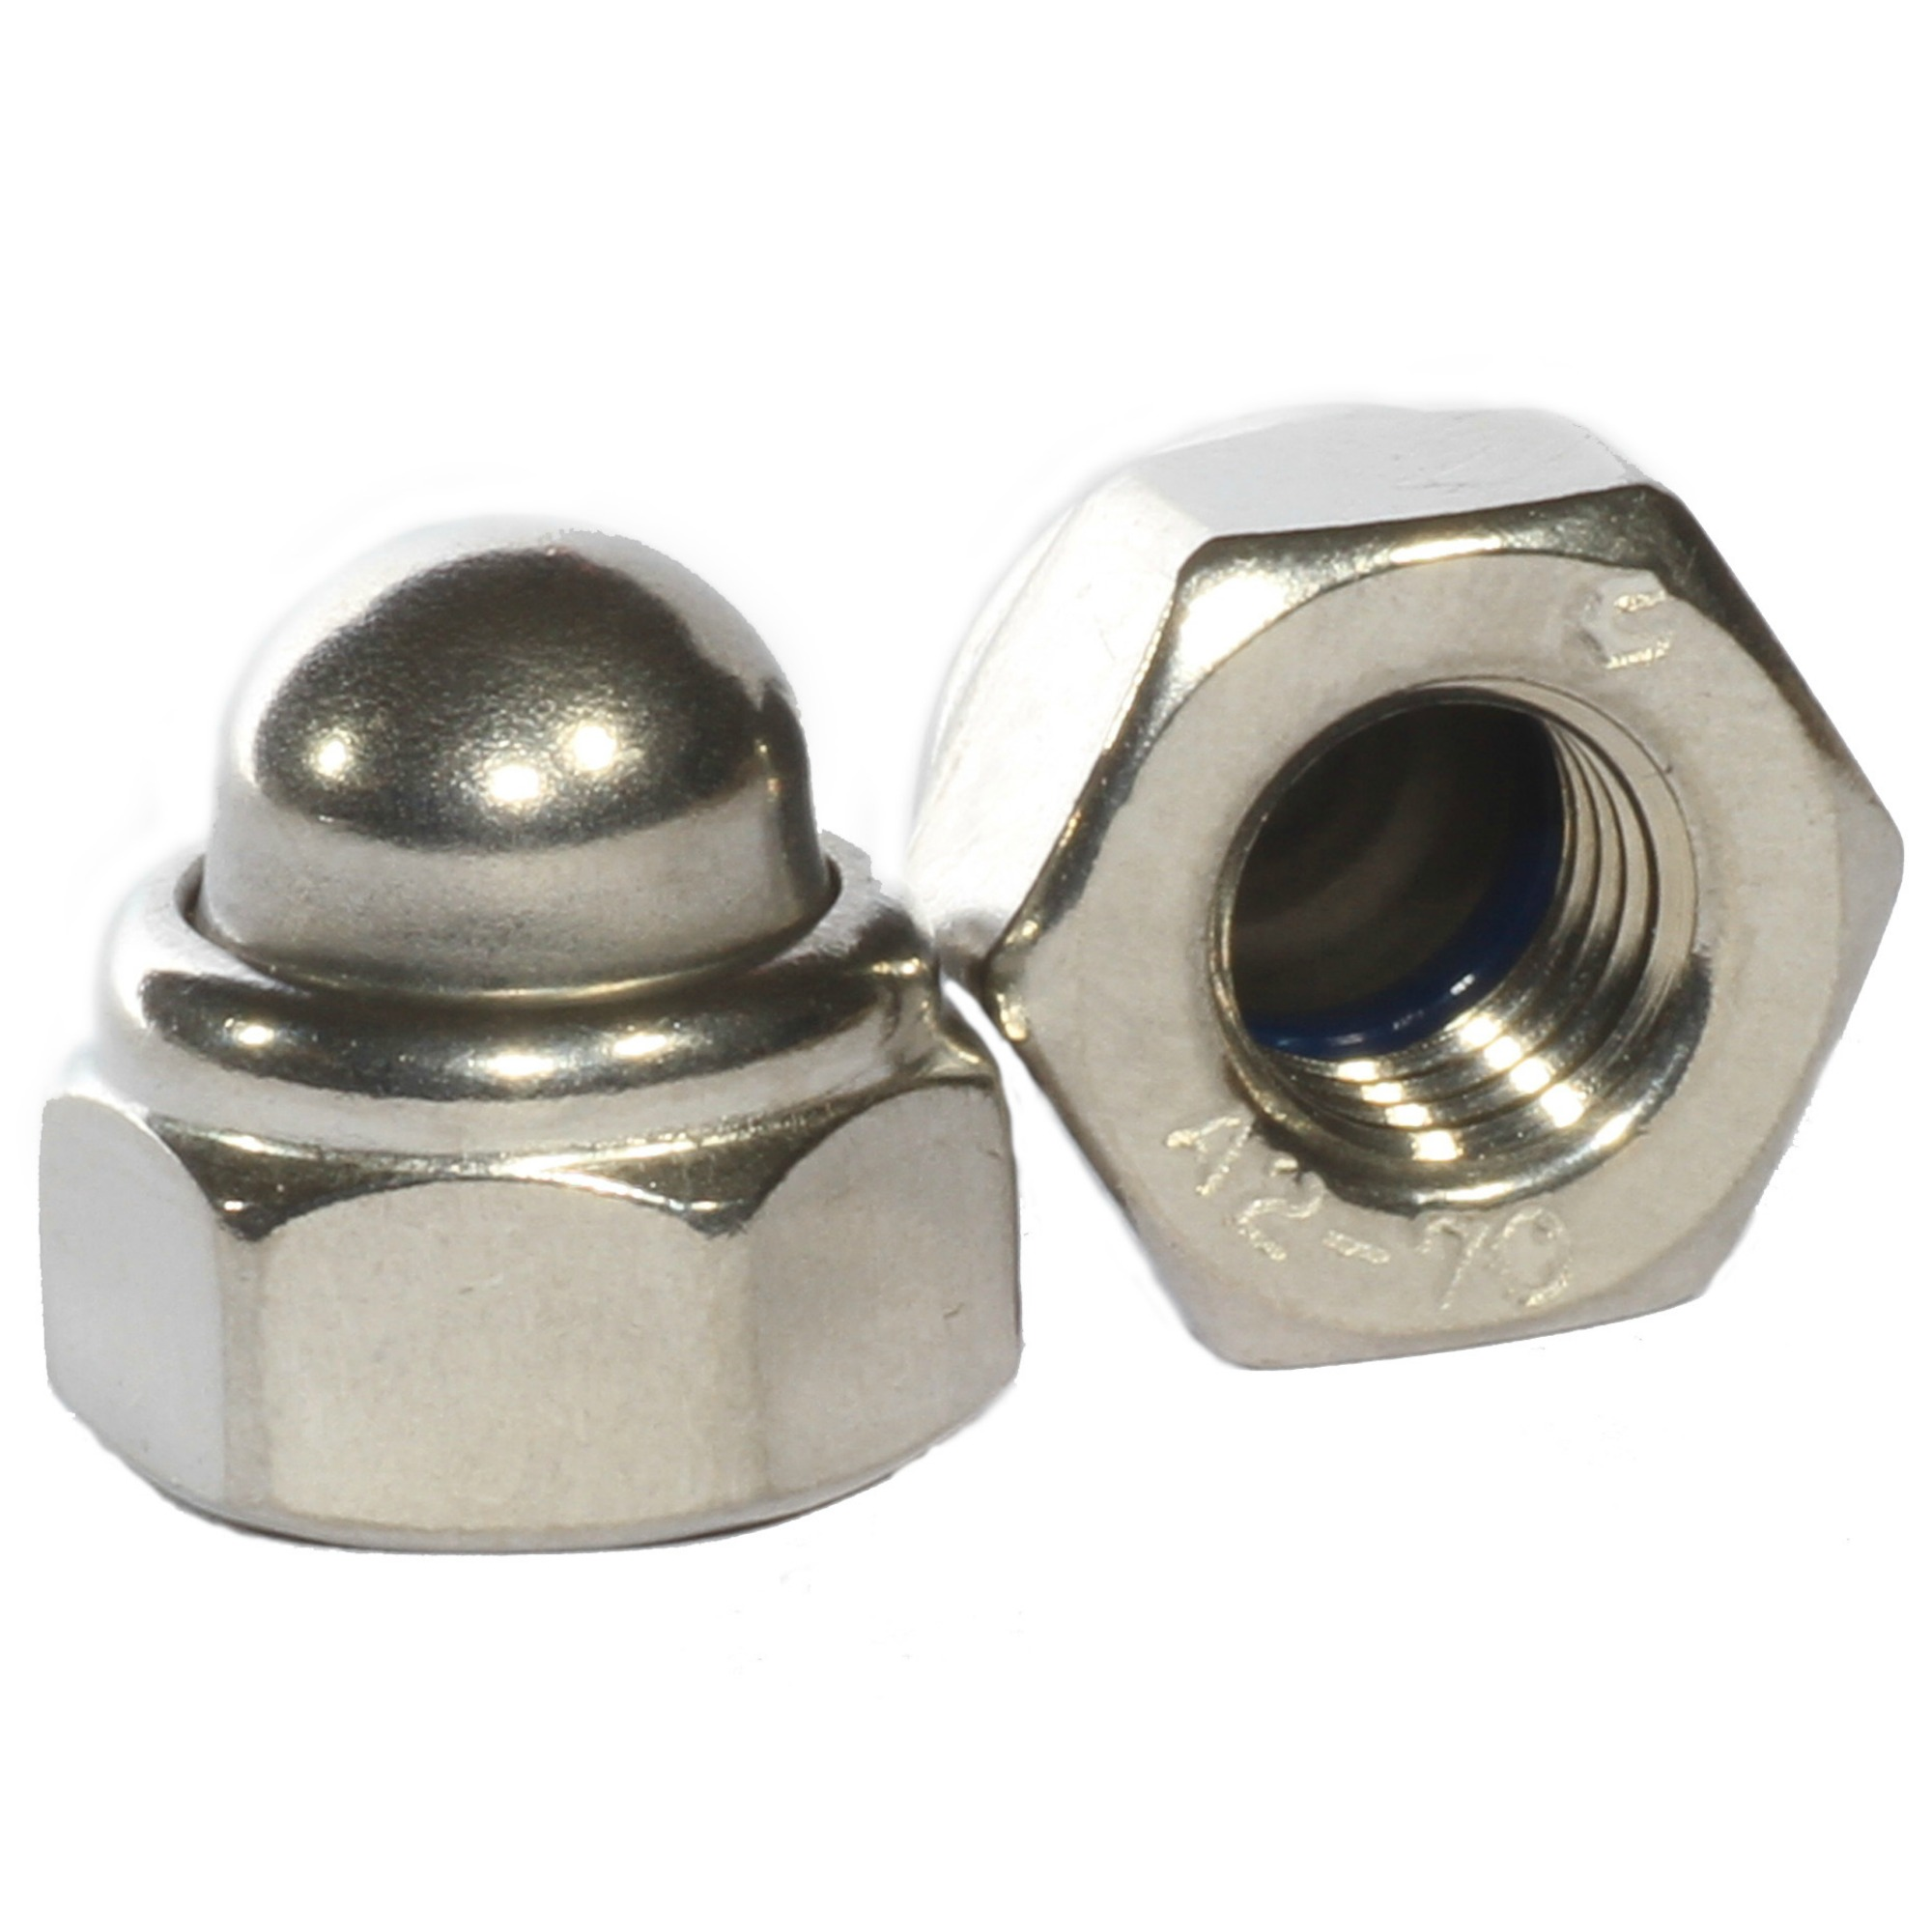 M5 Brass Dome Nuts You Choose Qty 5mm Nut Fix Fixings Dome Head 5 mm You Pick